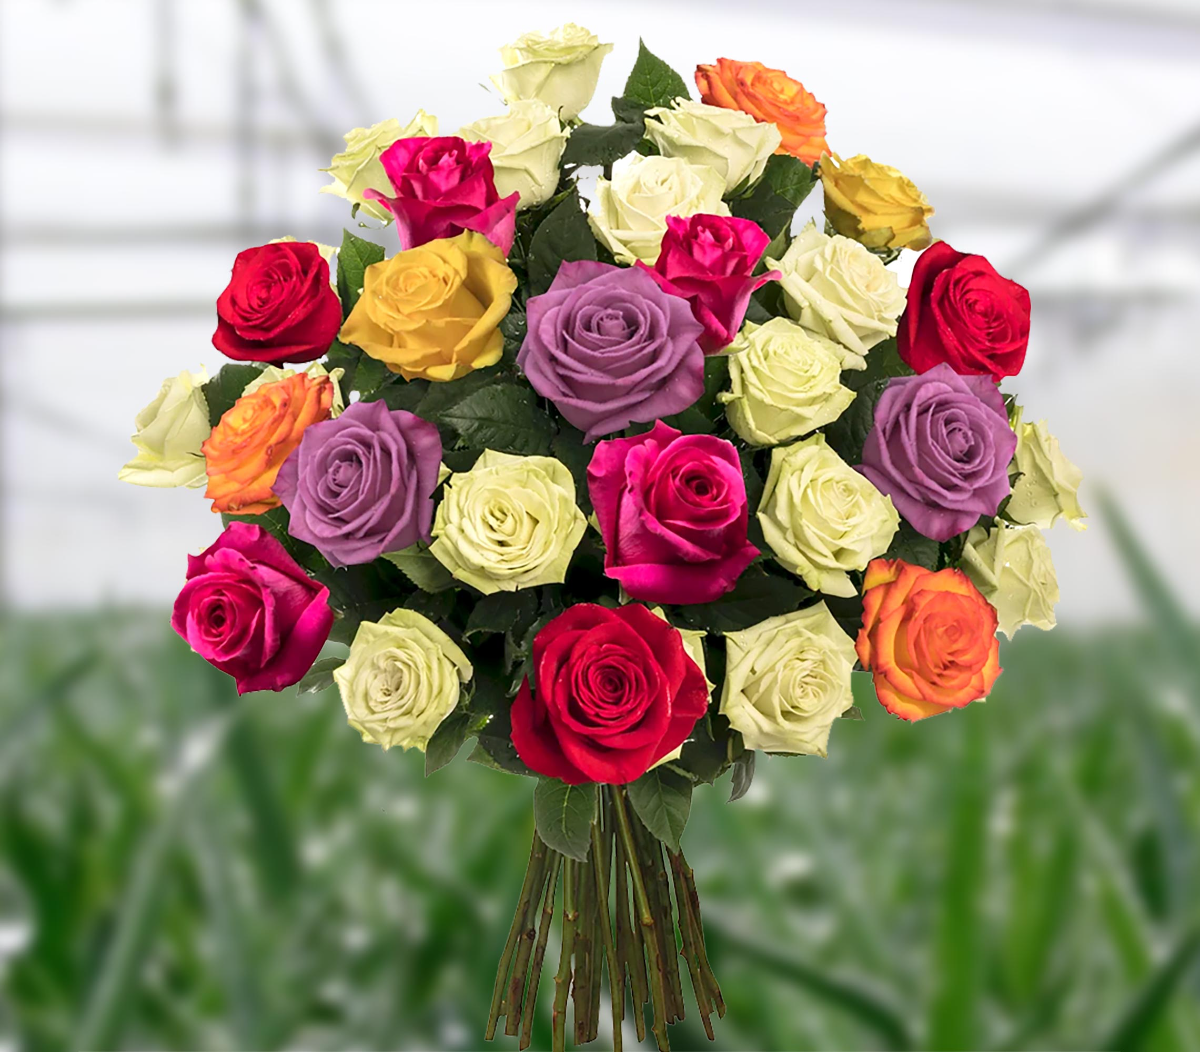 Thanks for Entering Our Raffle to Win a FREE Breathtaking Blend Bouquet!